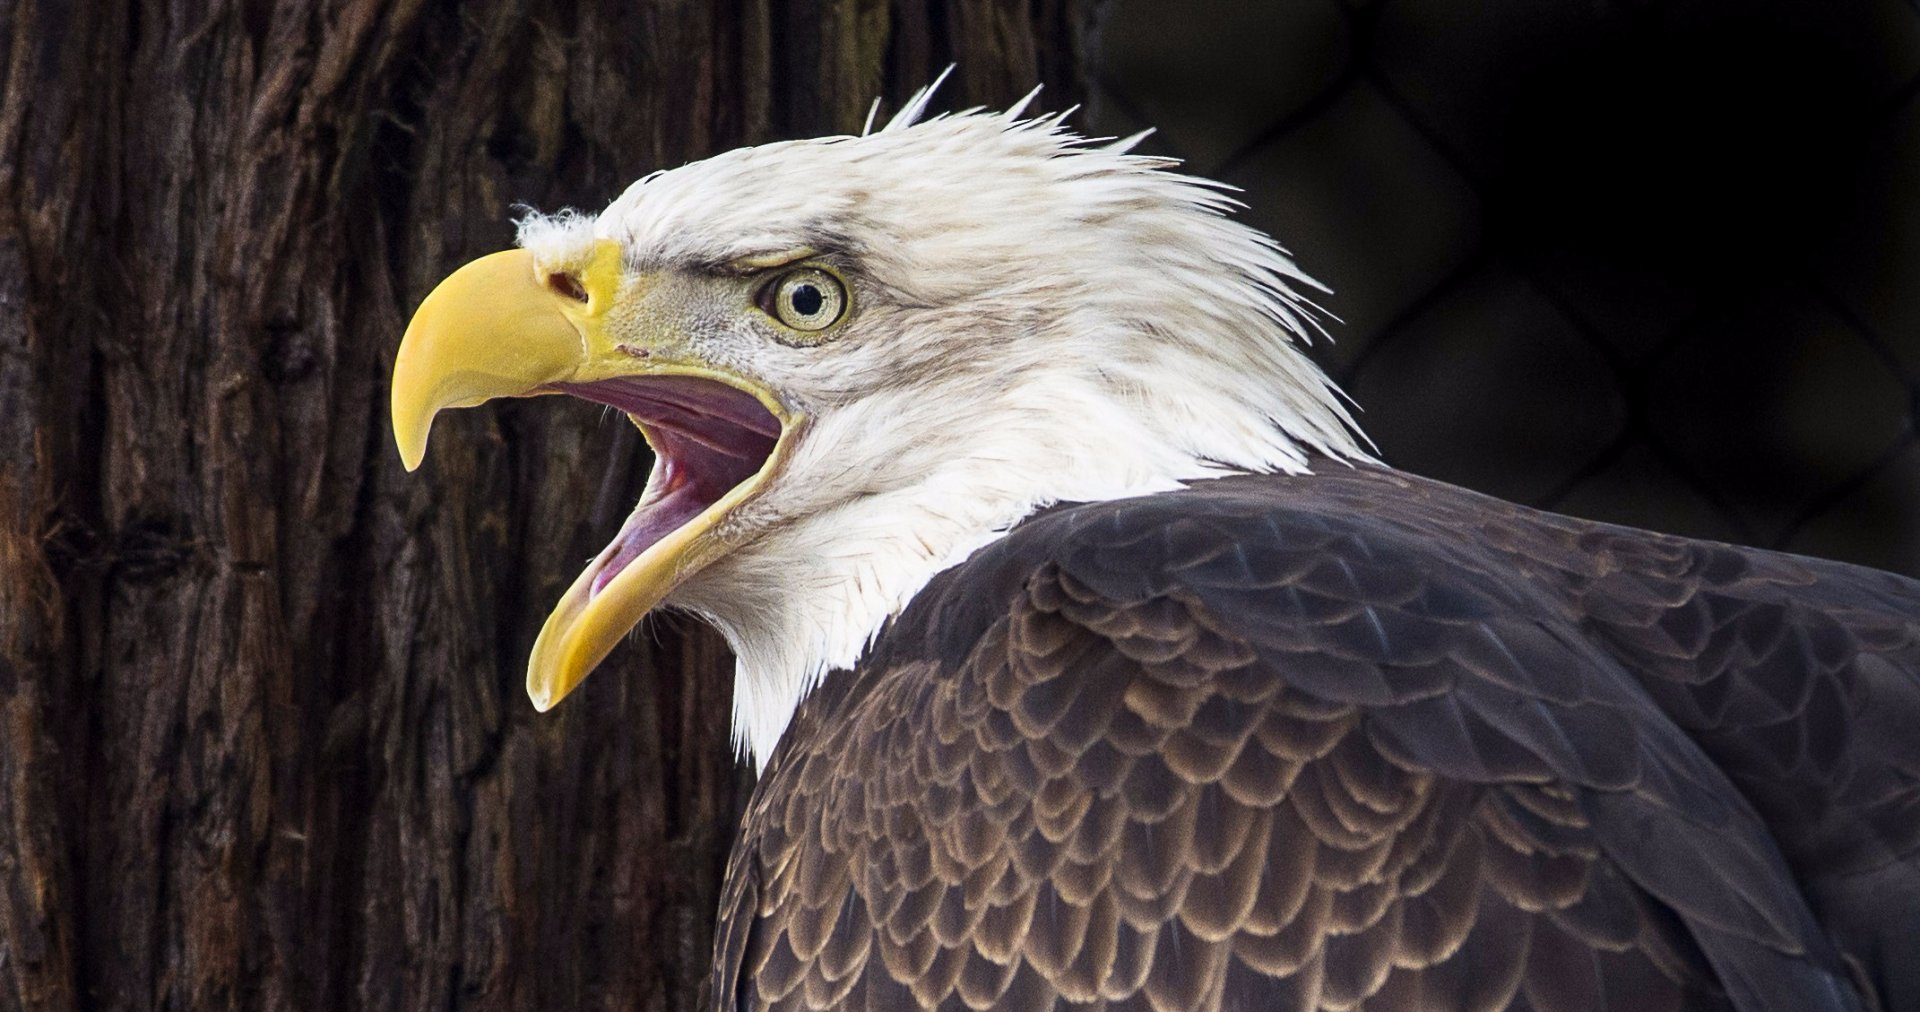 Cheyenne, is one of two bald eagles at the Sequoia Park Zoo. | Ashley Mobley